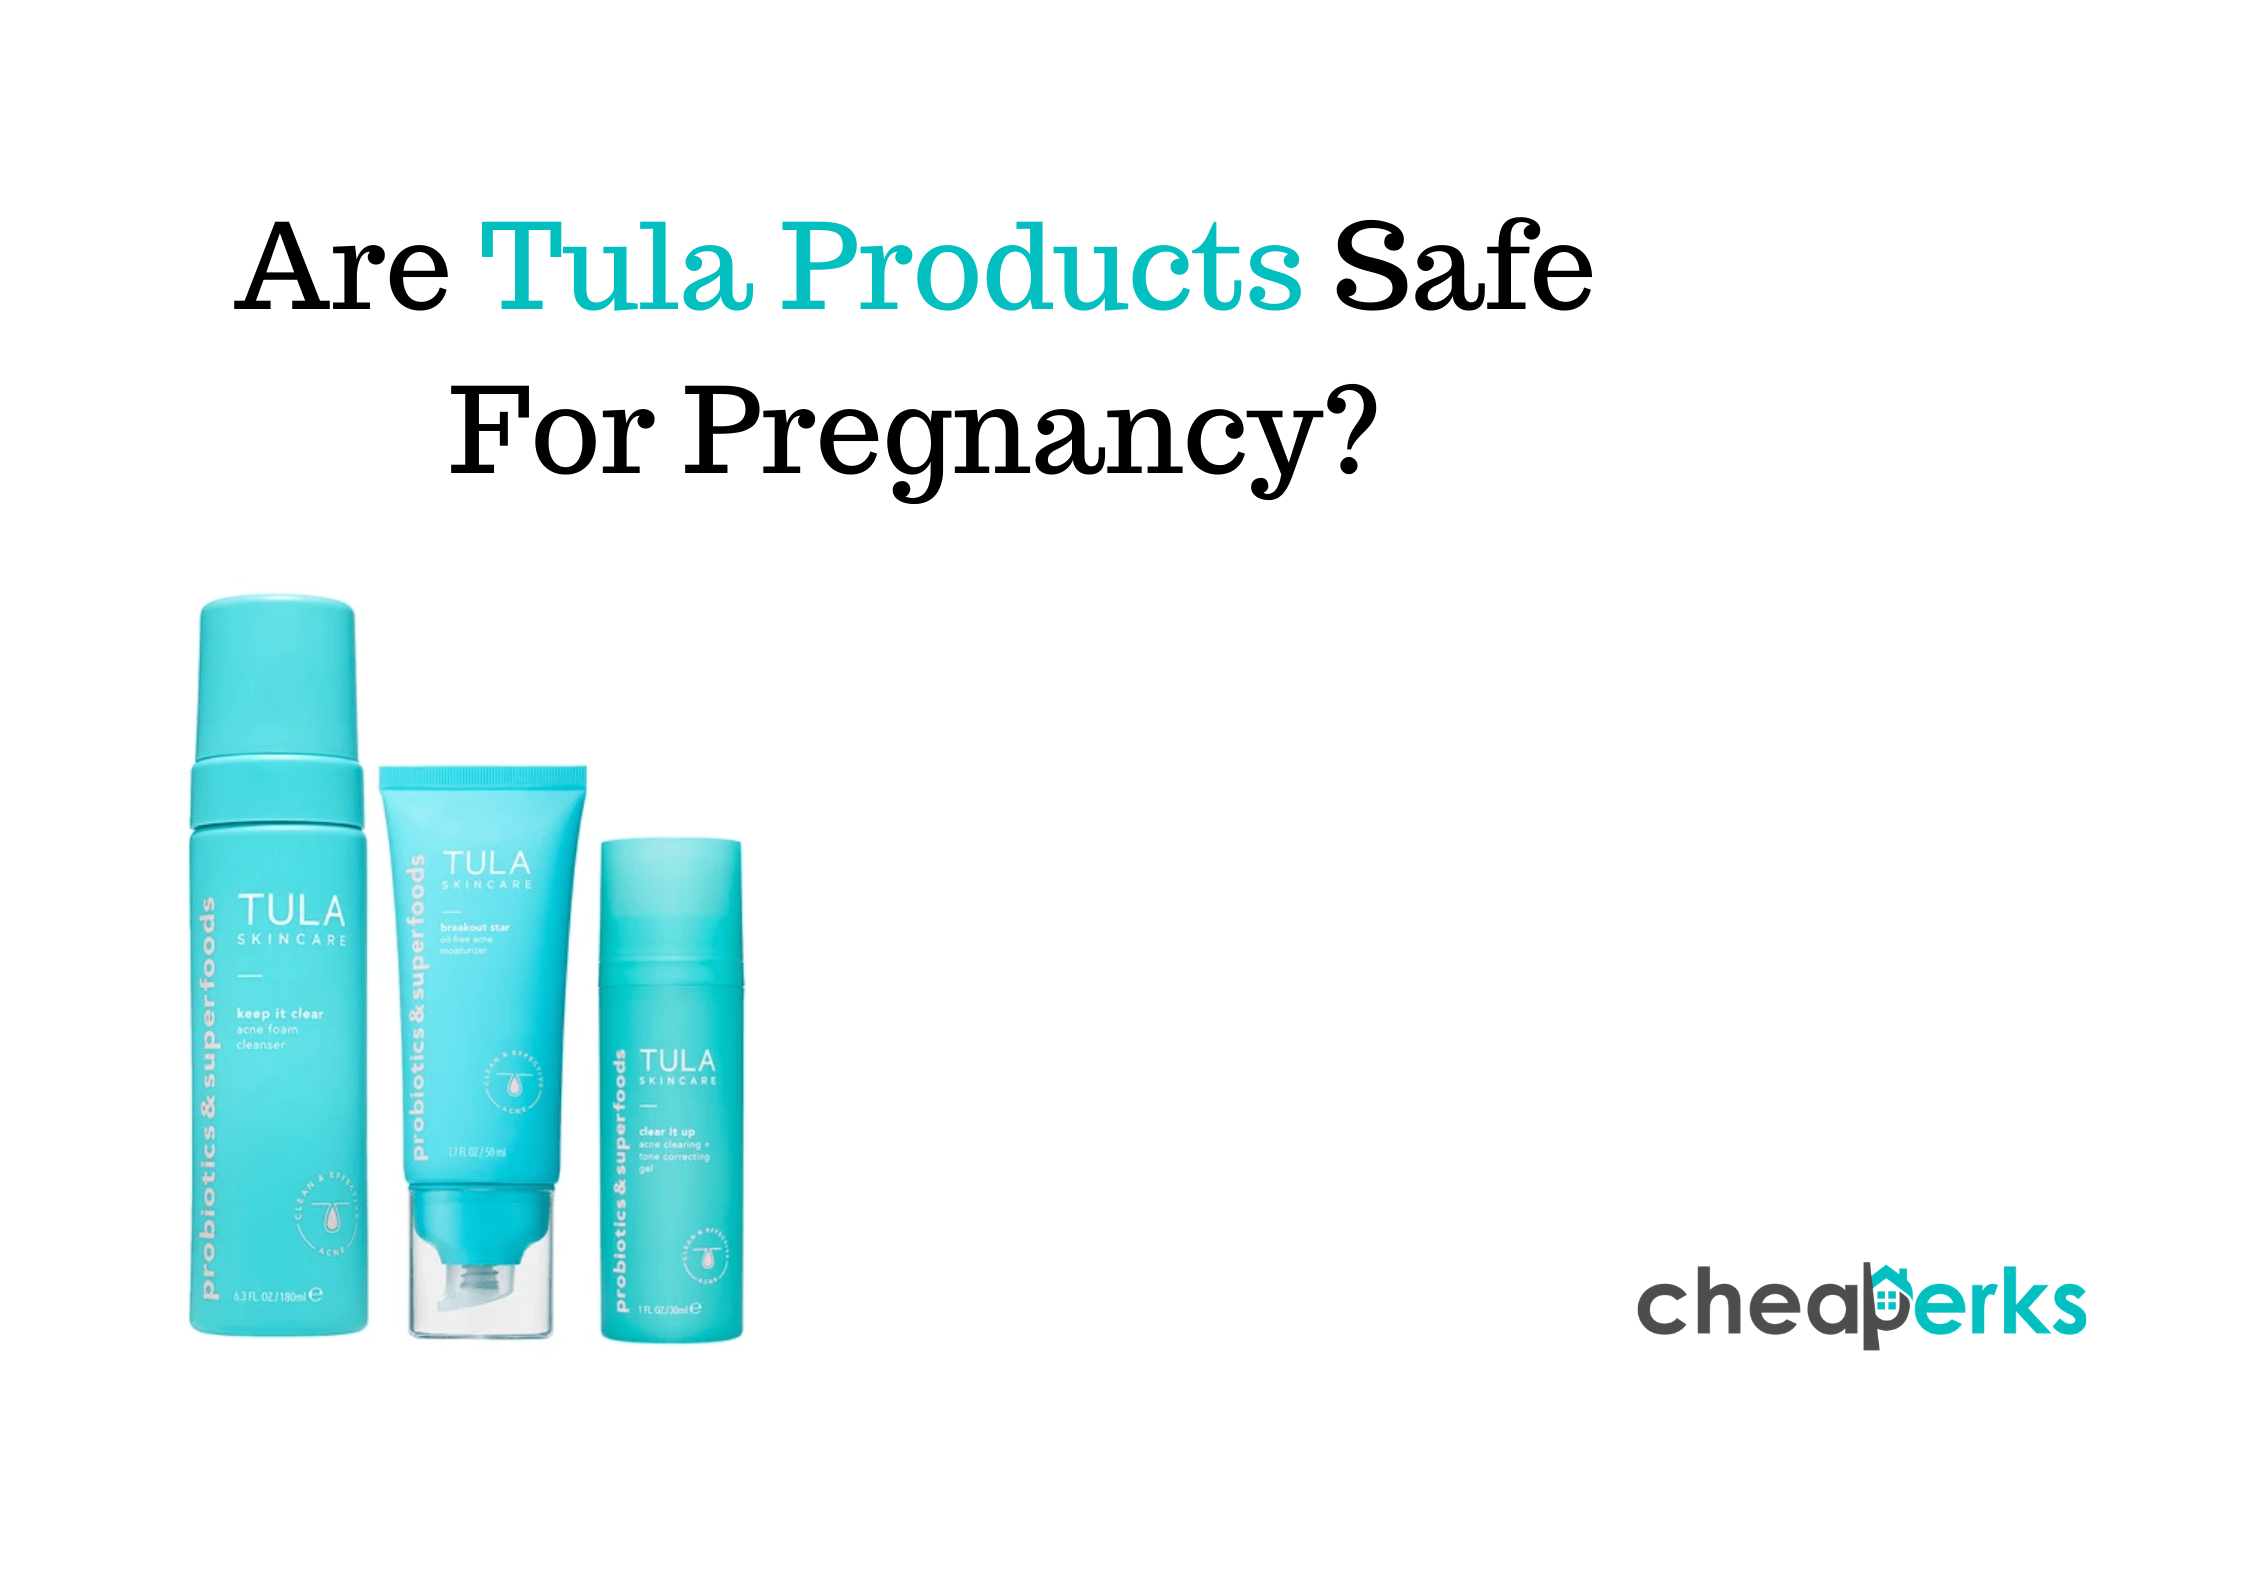 Are Tula Products Safe For Pregnancy